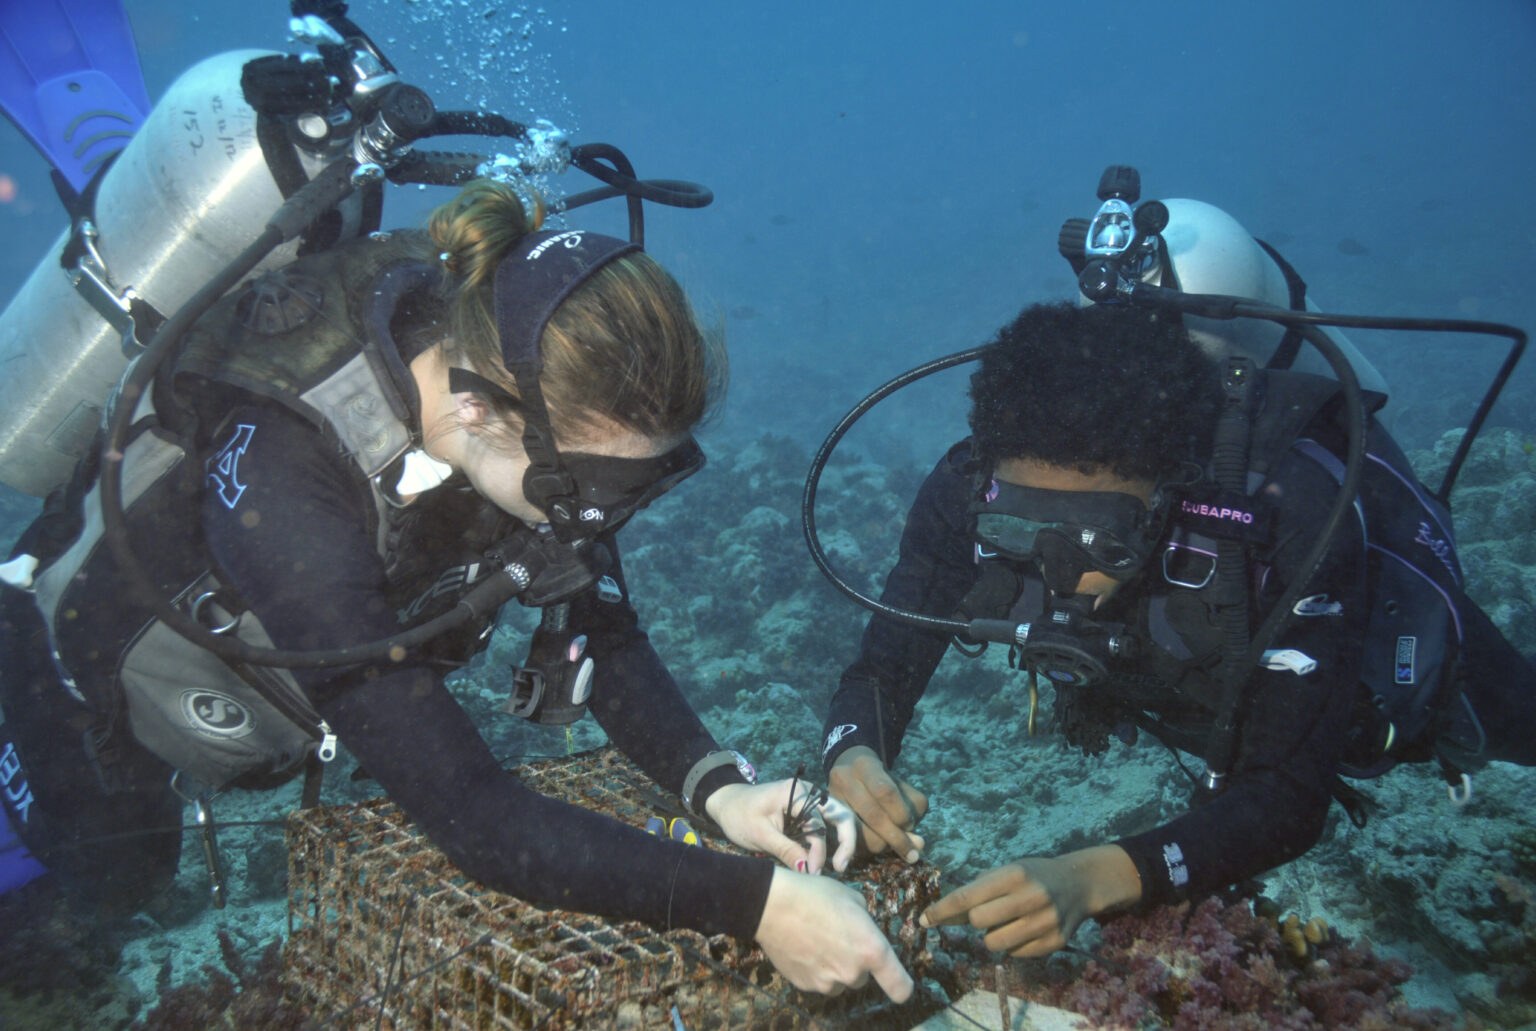 two divers work on a small-mesh cage on an underwater reef